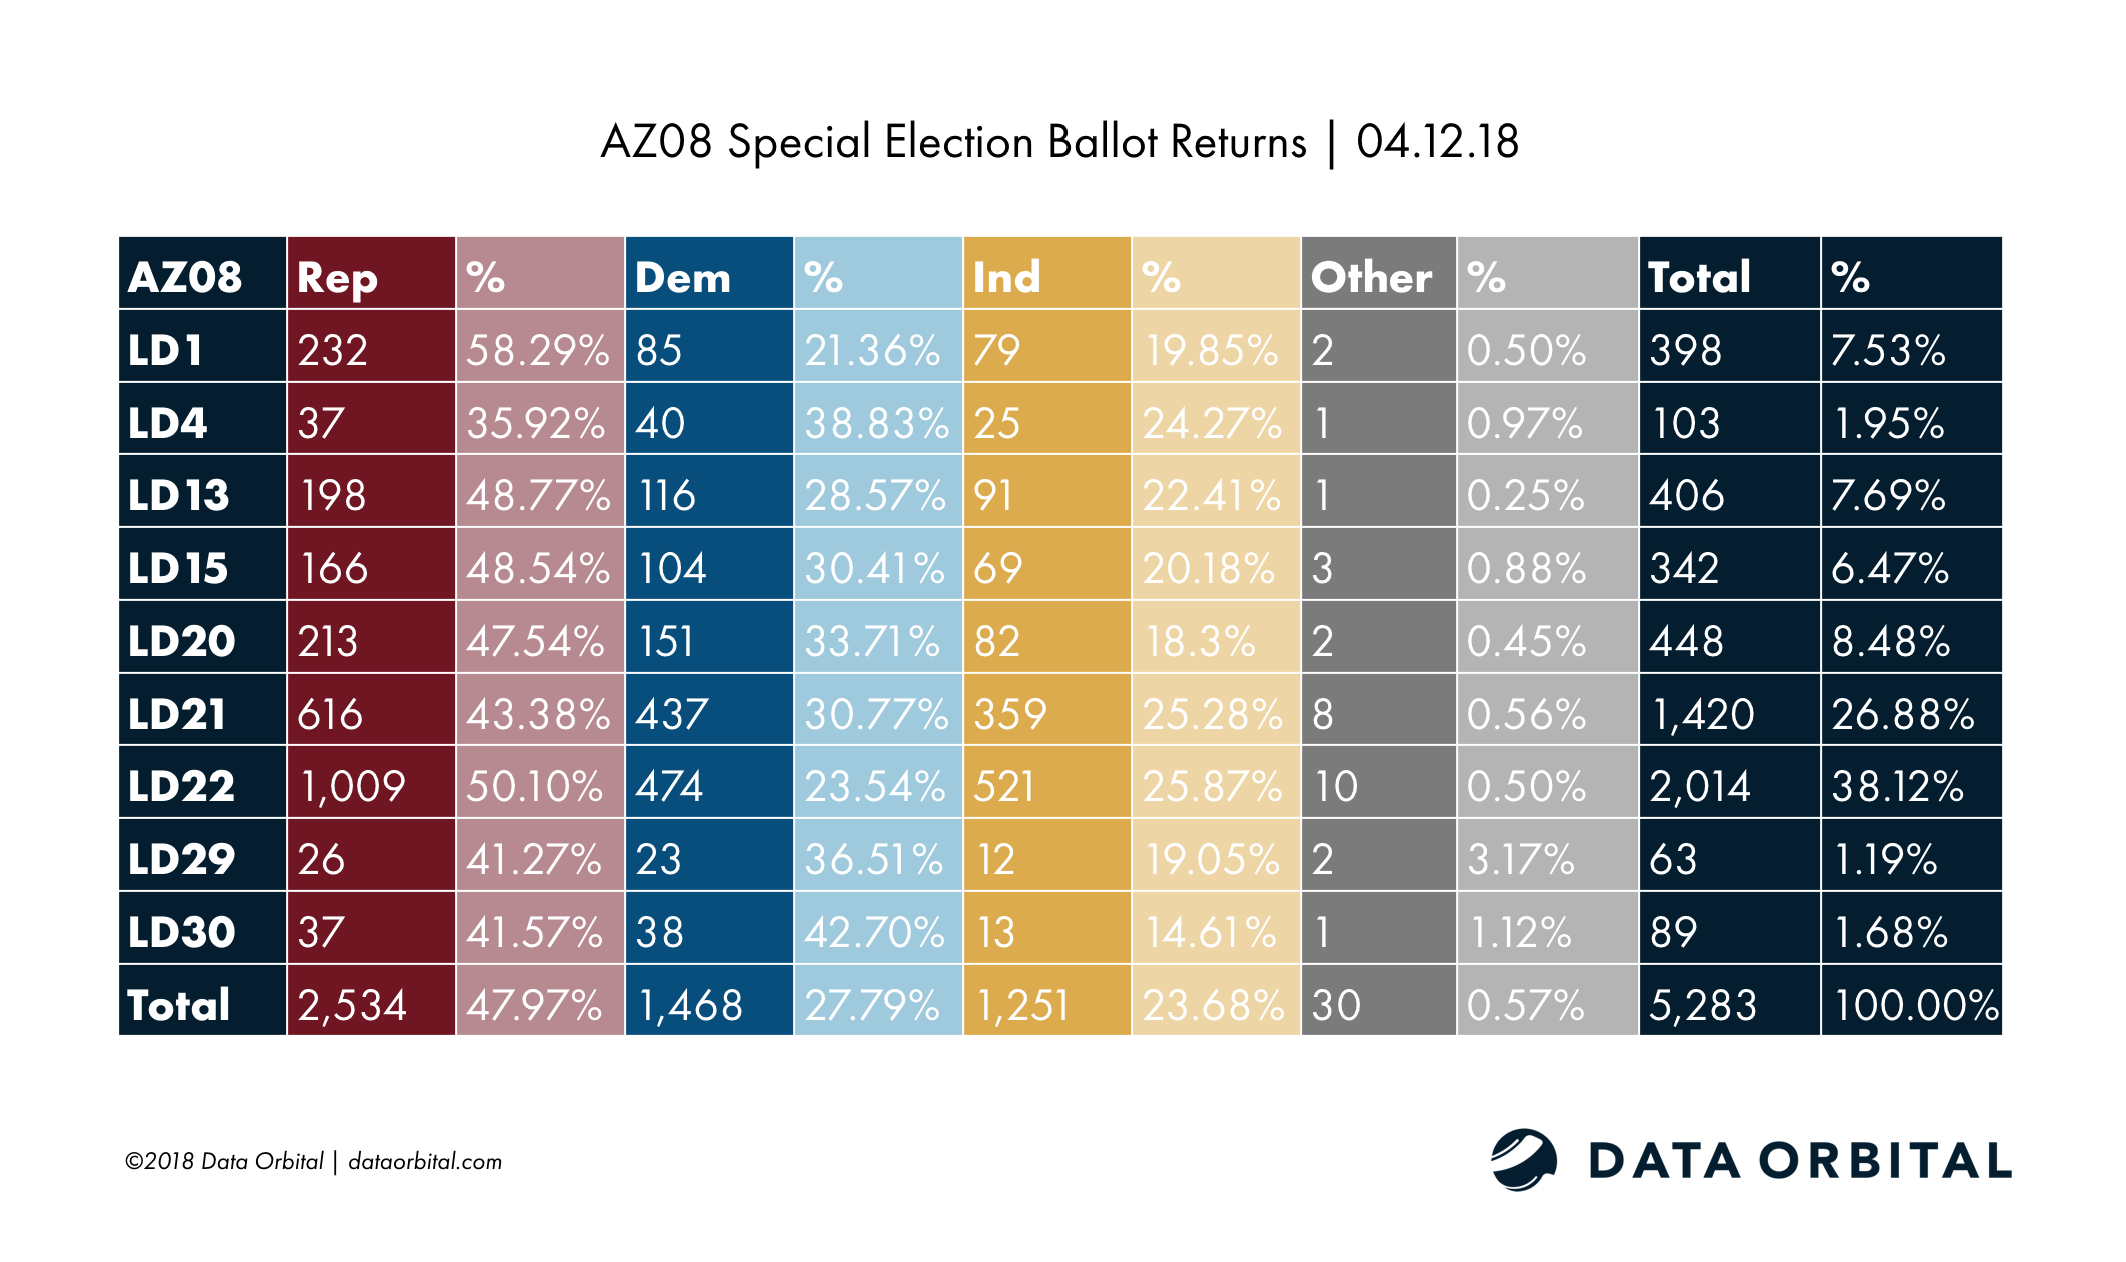 AZ08 Special Election Ballot Returns 04.12.18